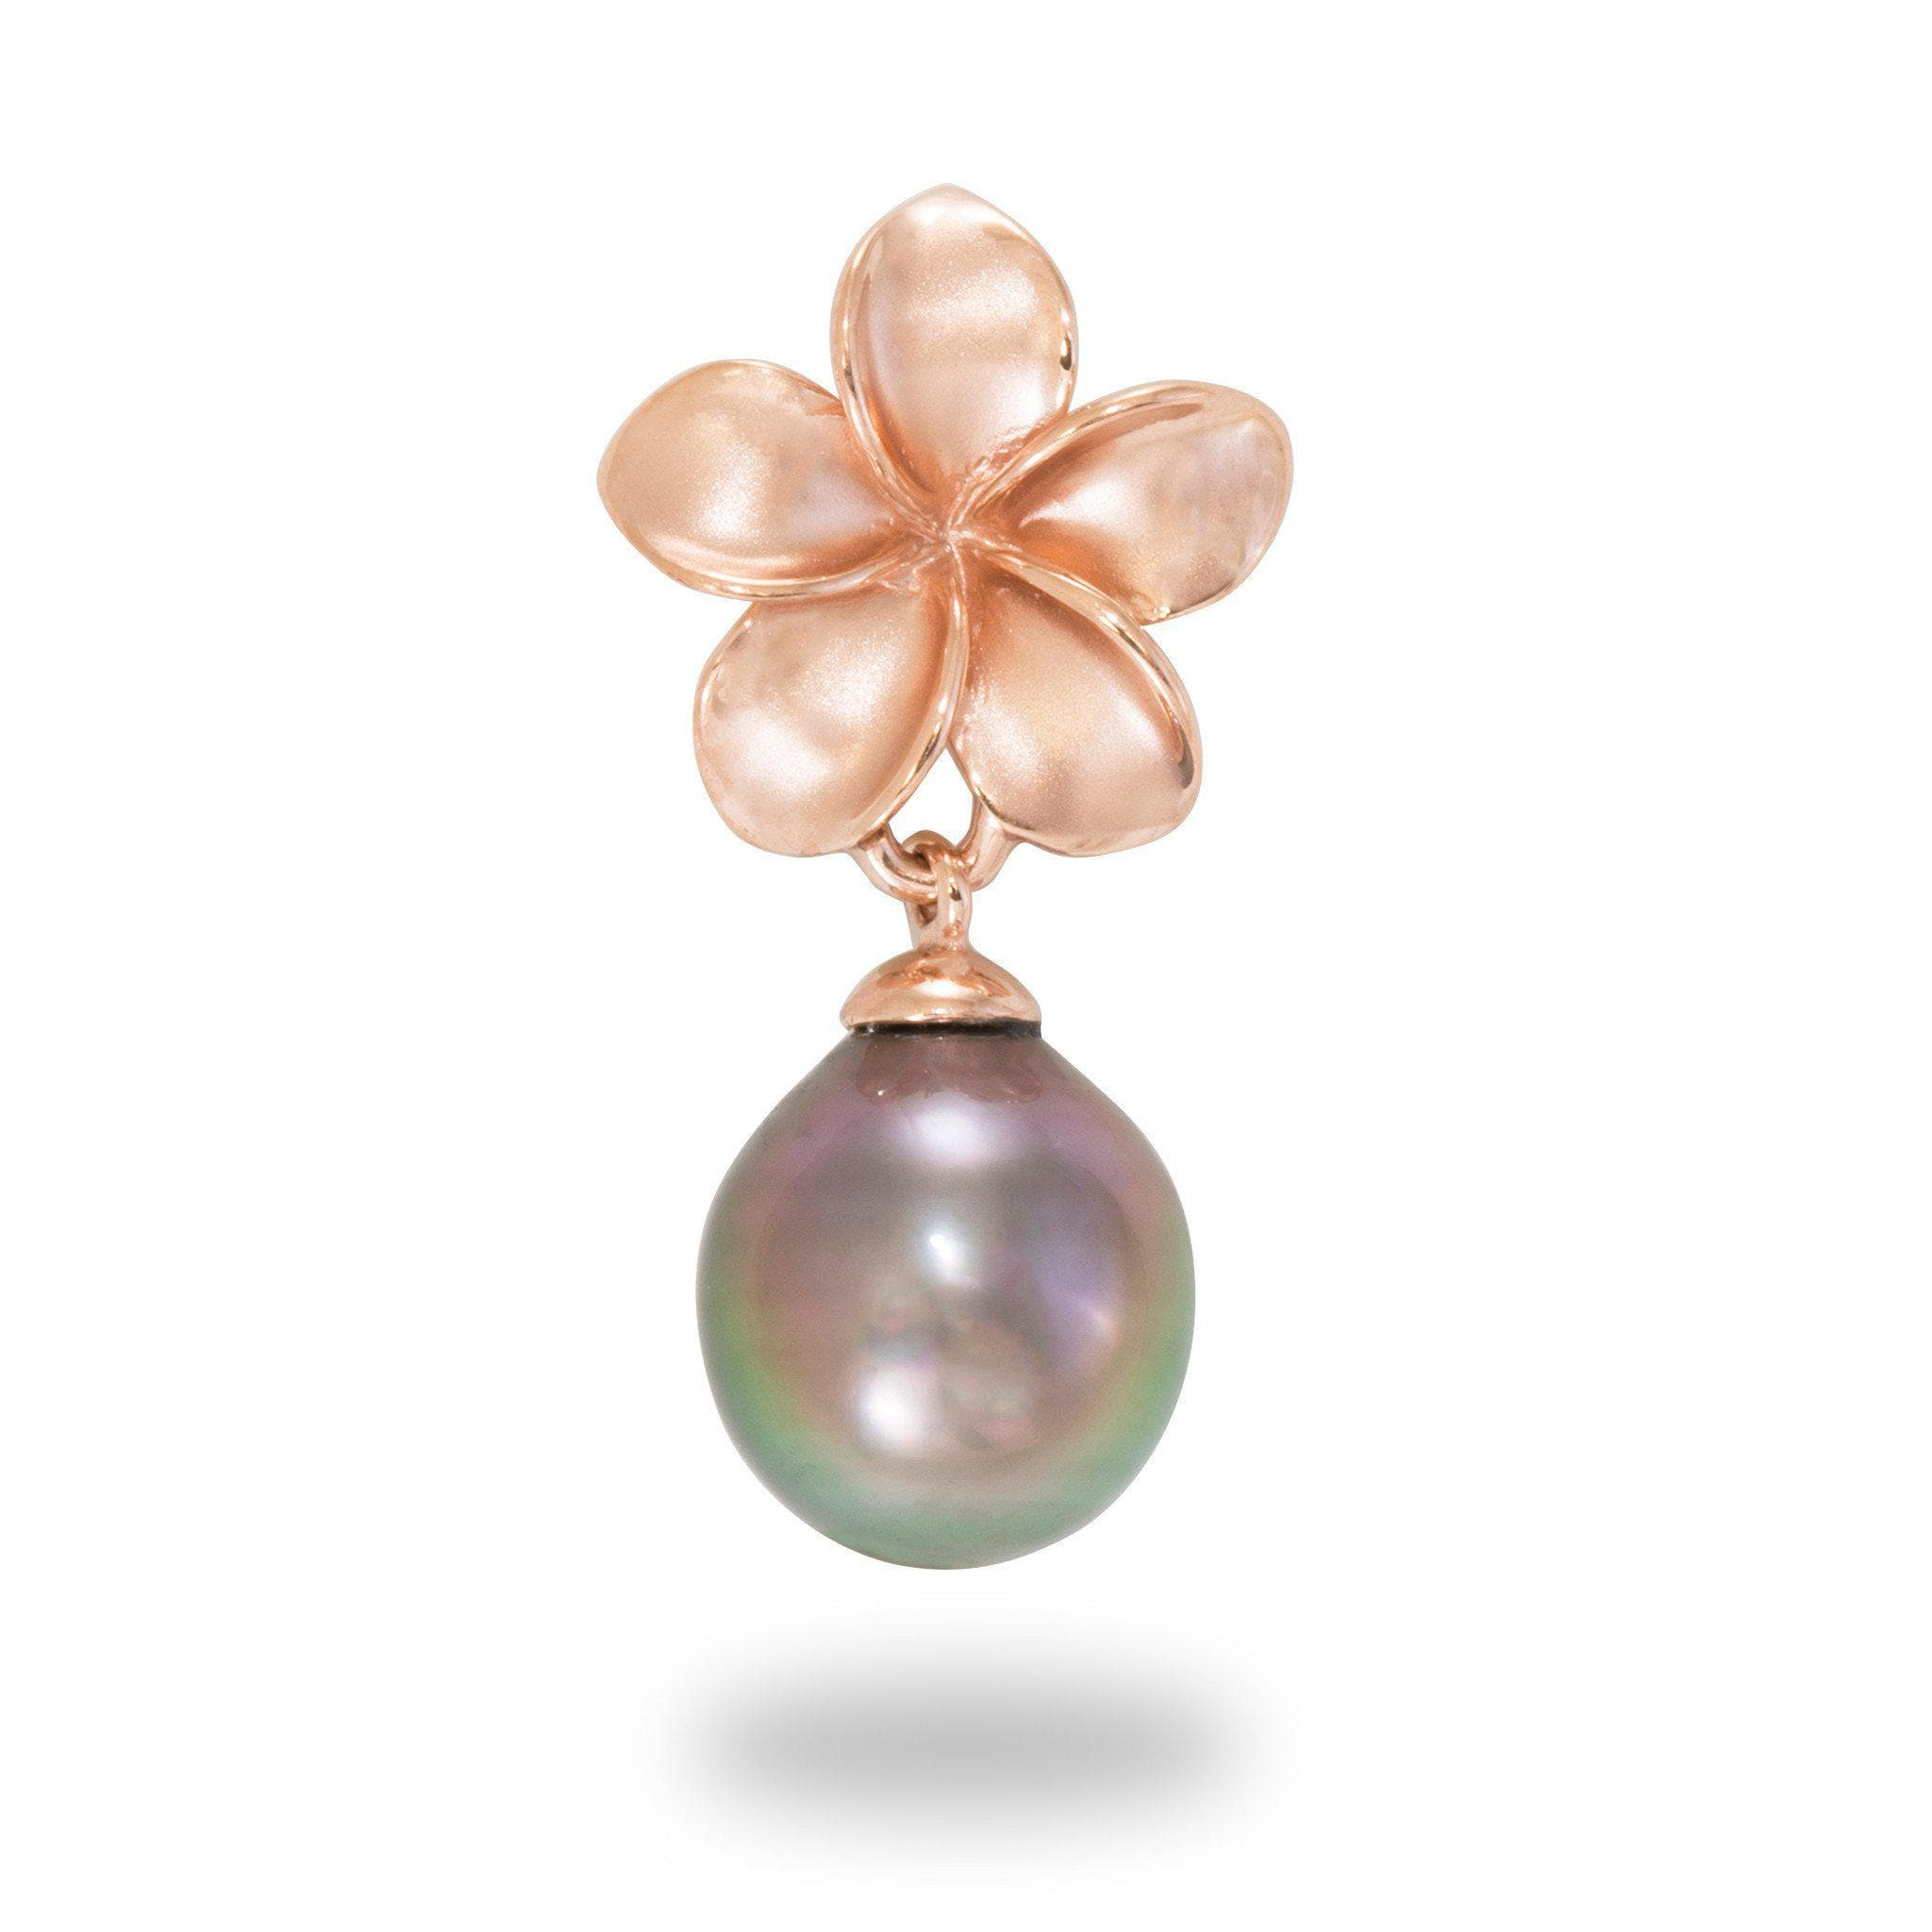 pearl hook single collections earrings jewellery designs products lush